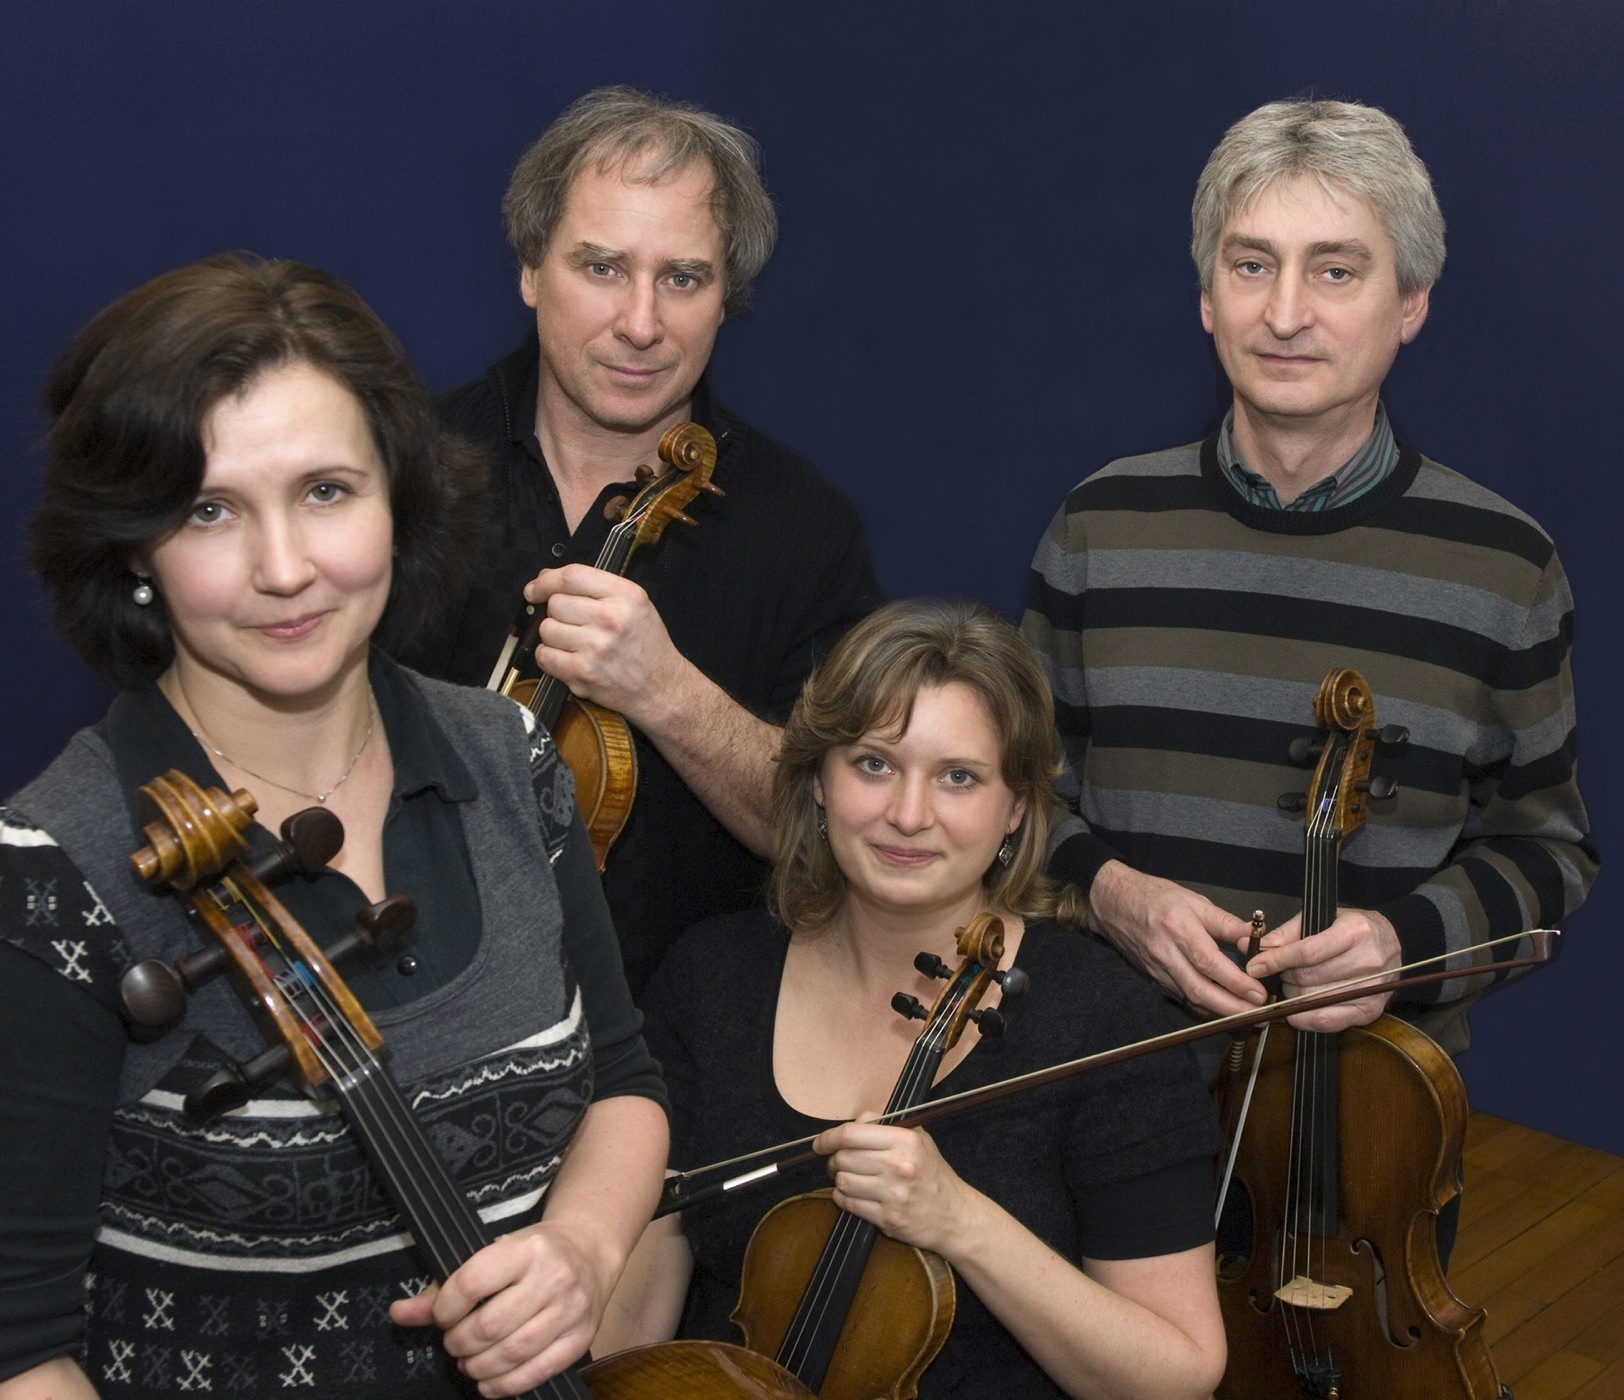 The Keller Quartet plays music by Shostakovich, Mozart and Tchaikovsky on Tuesday.